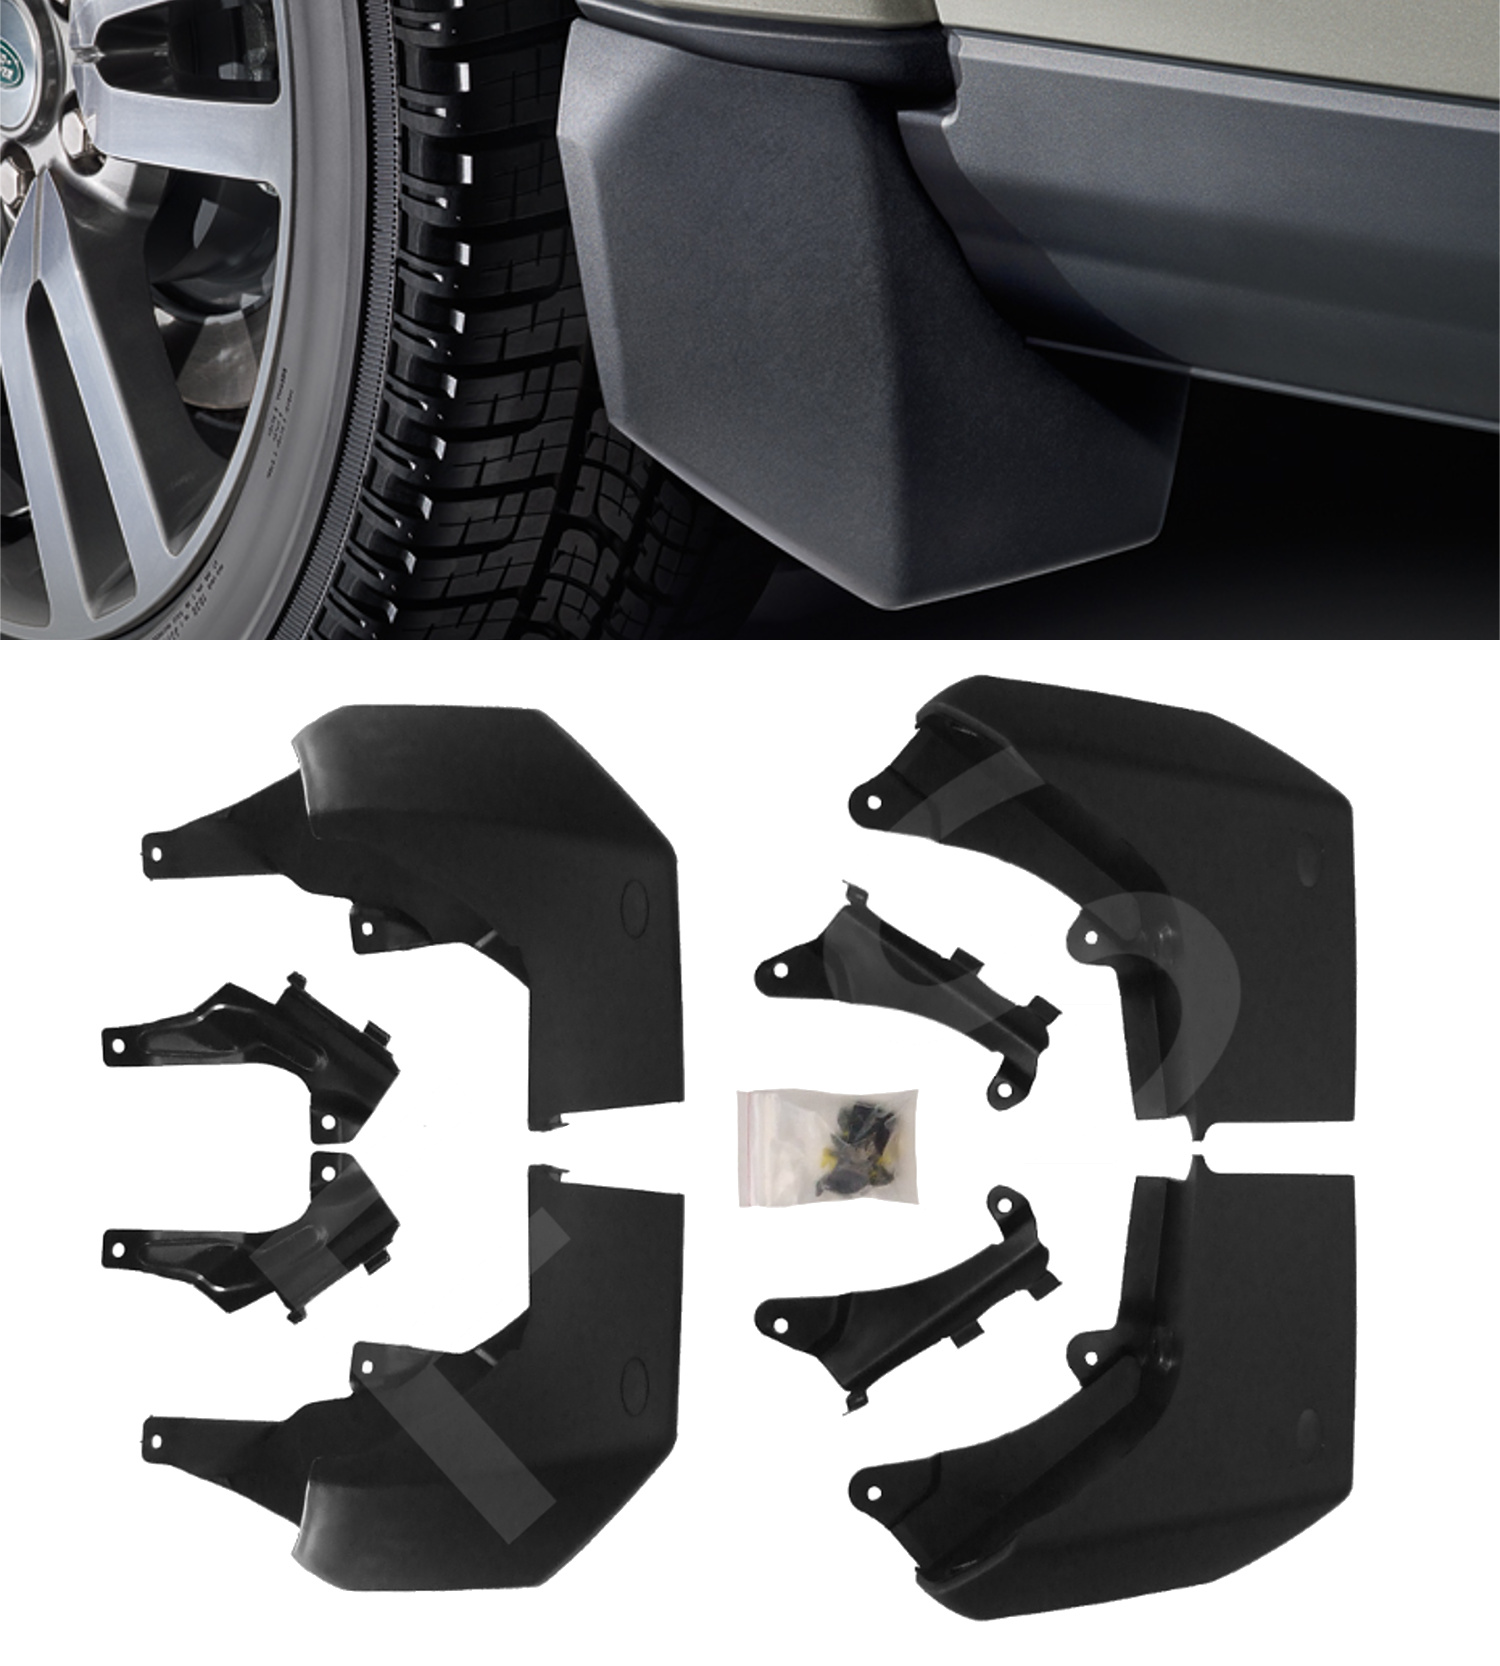 Land Rover Discovery Sport Rear Mud Flap Set Discovery Sport Mud Flap Kit